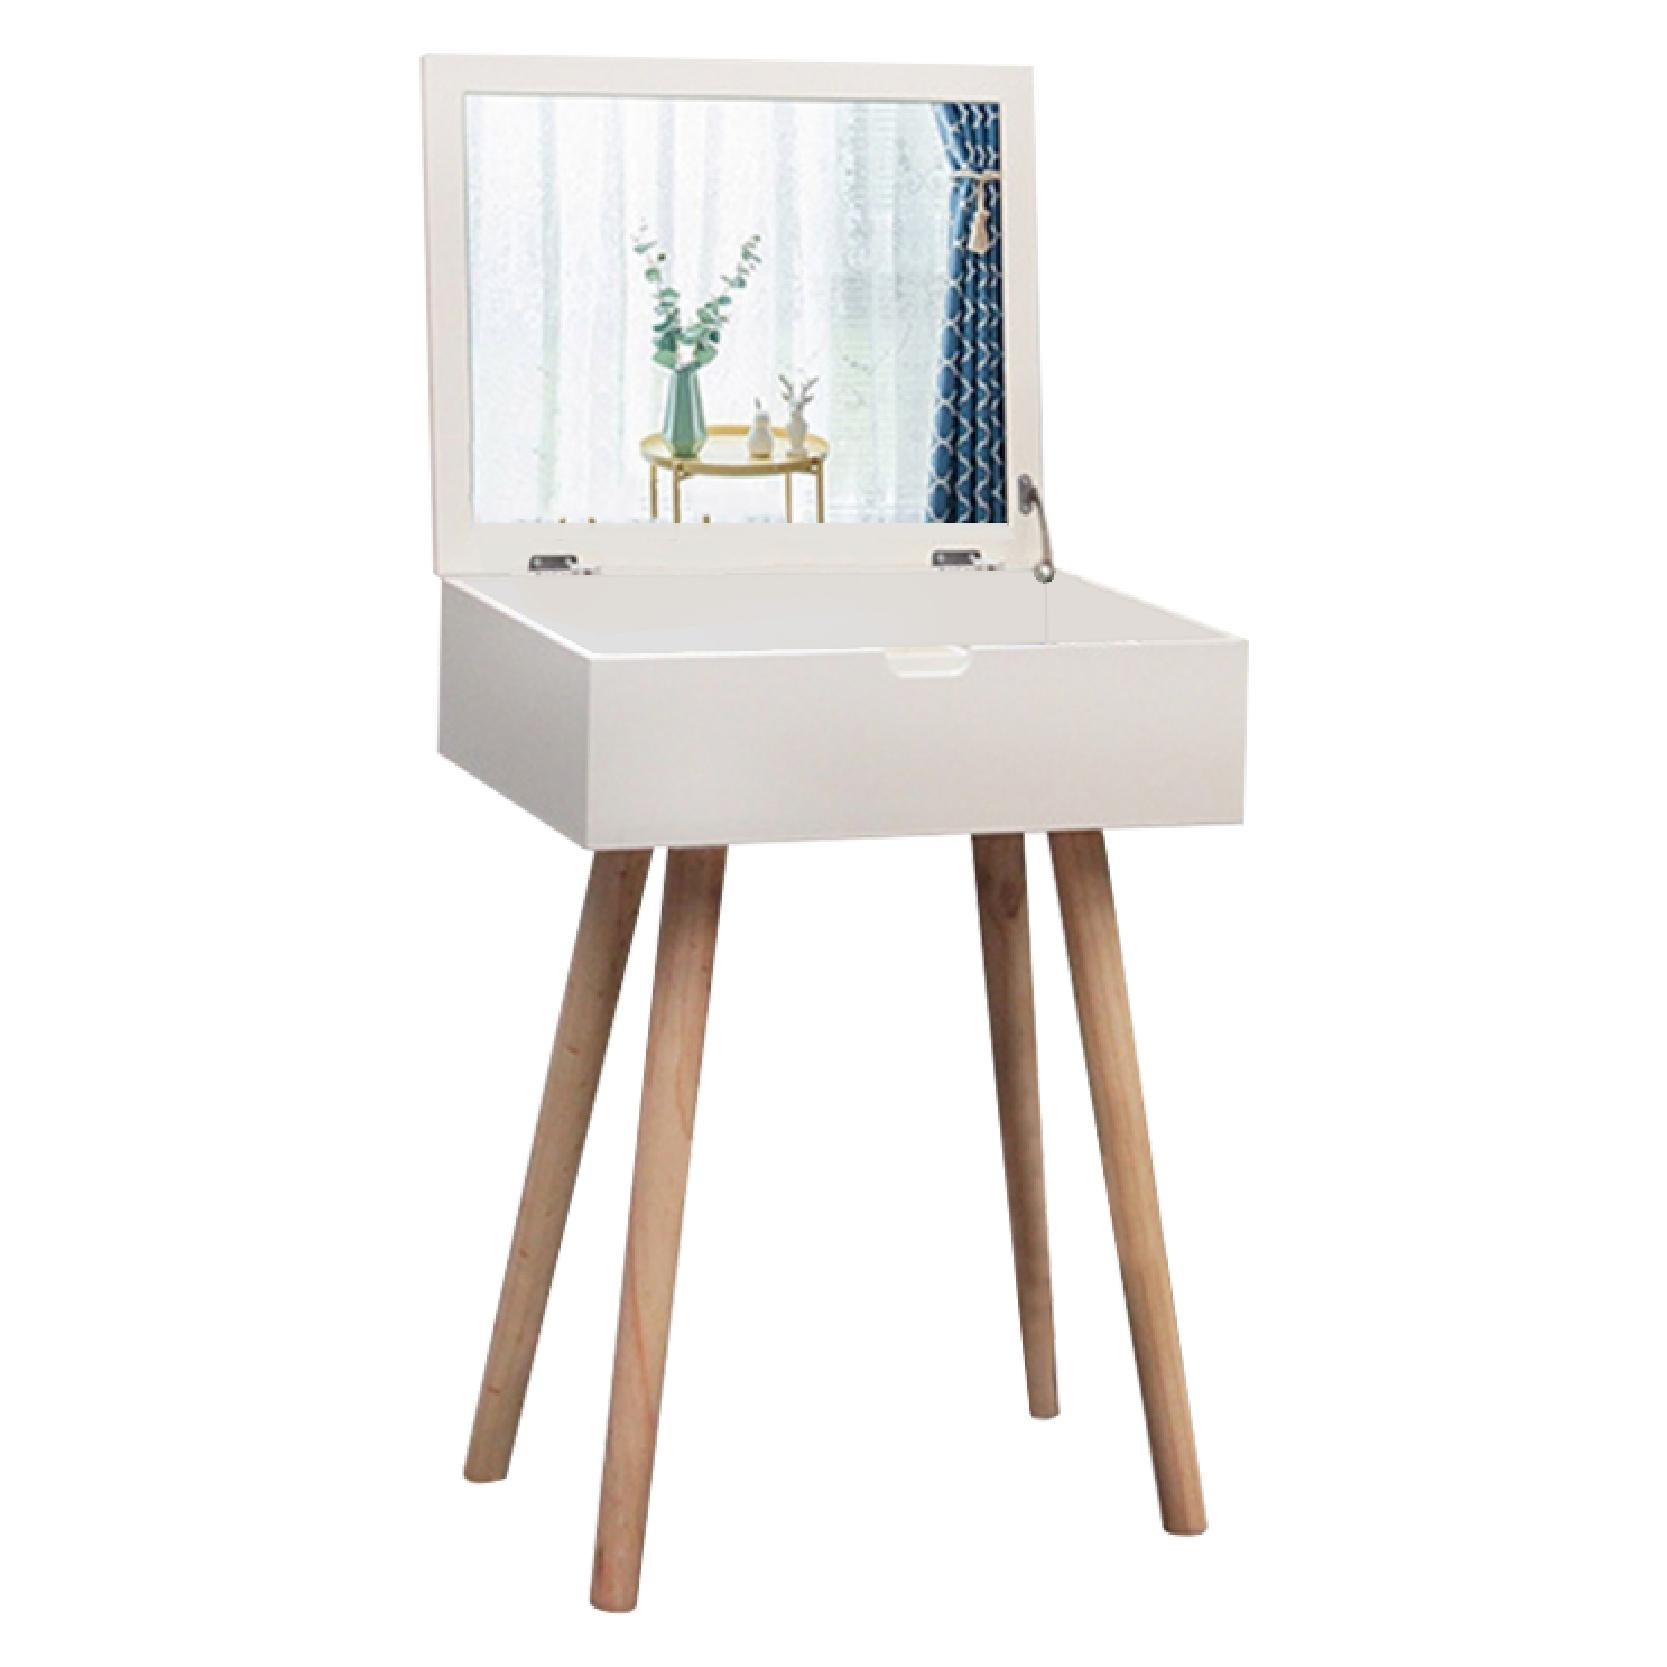 JIJI (Taylor Compact Dressing Table) Free Installation / Furniture / Storage / Home / Dressing Table / Makeup Table / 12 Months Warranty / (SG)